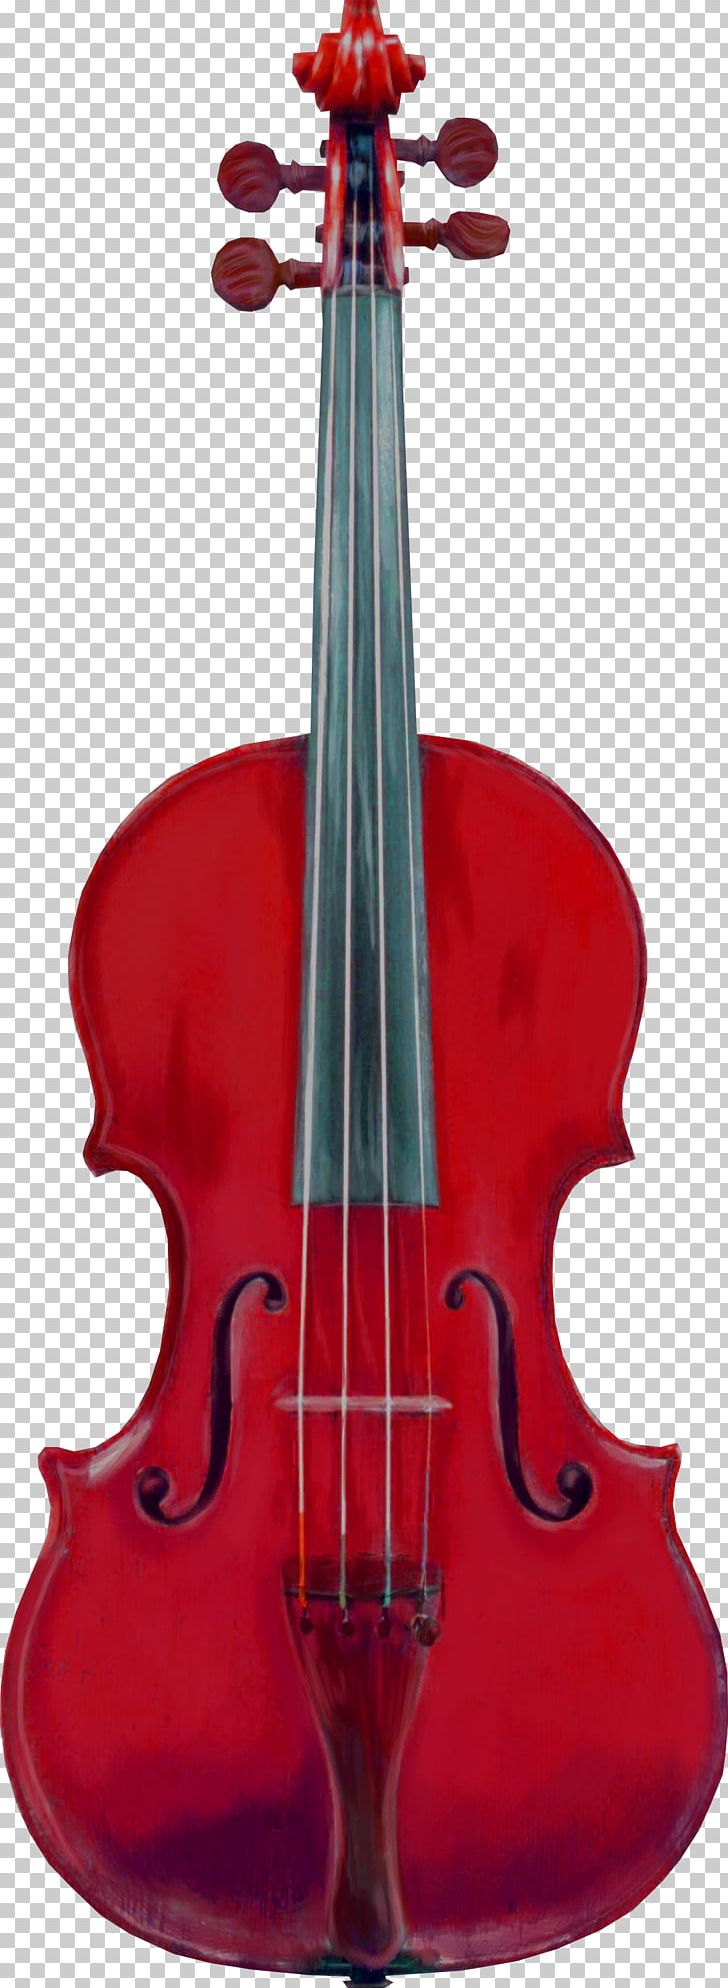 Venice Violin Family Musical Instruments Cello PNG, Clipart, Acoustic Electric Guitar, Antonio Stradivari, Bass Guitar, Bass Violin, Bow Free PNG Download